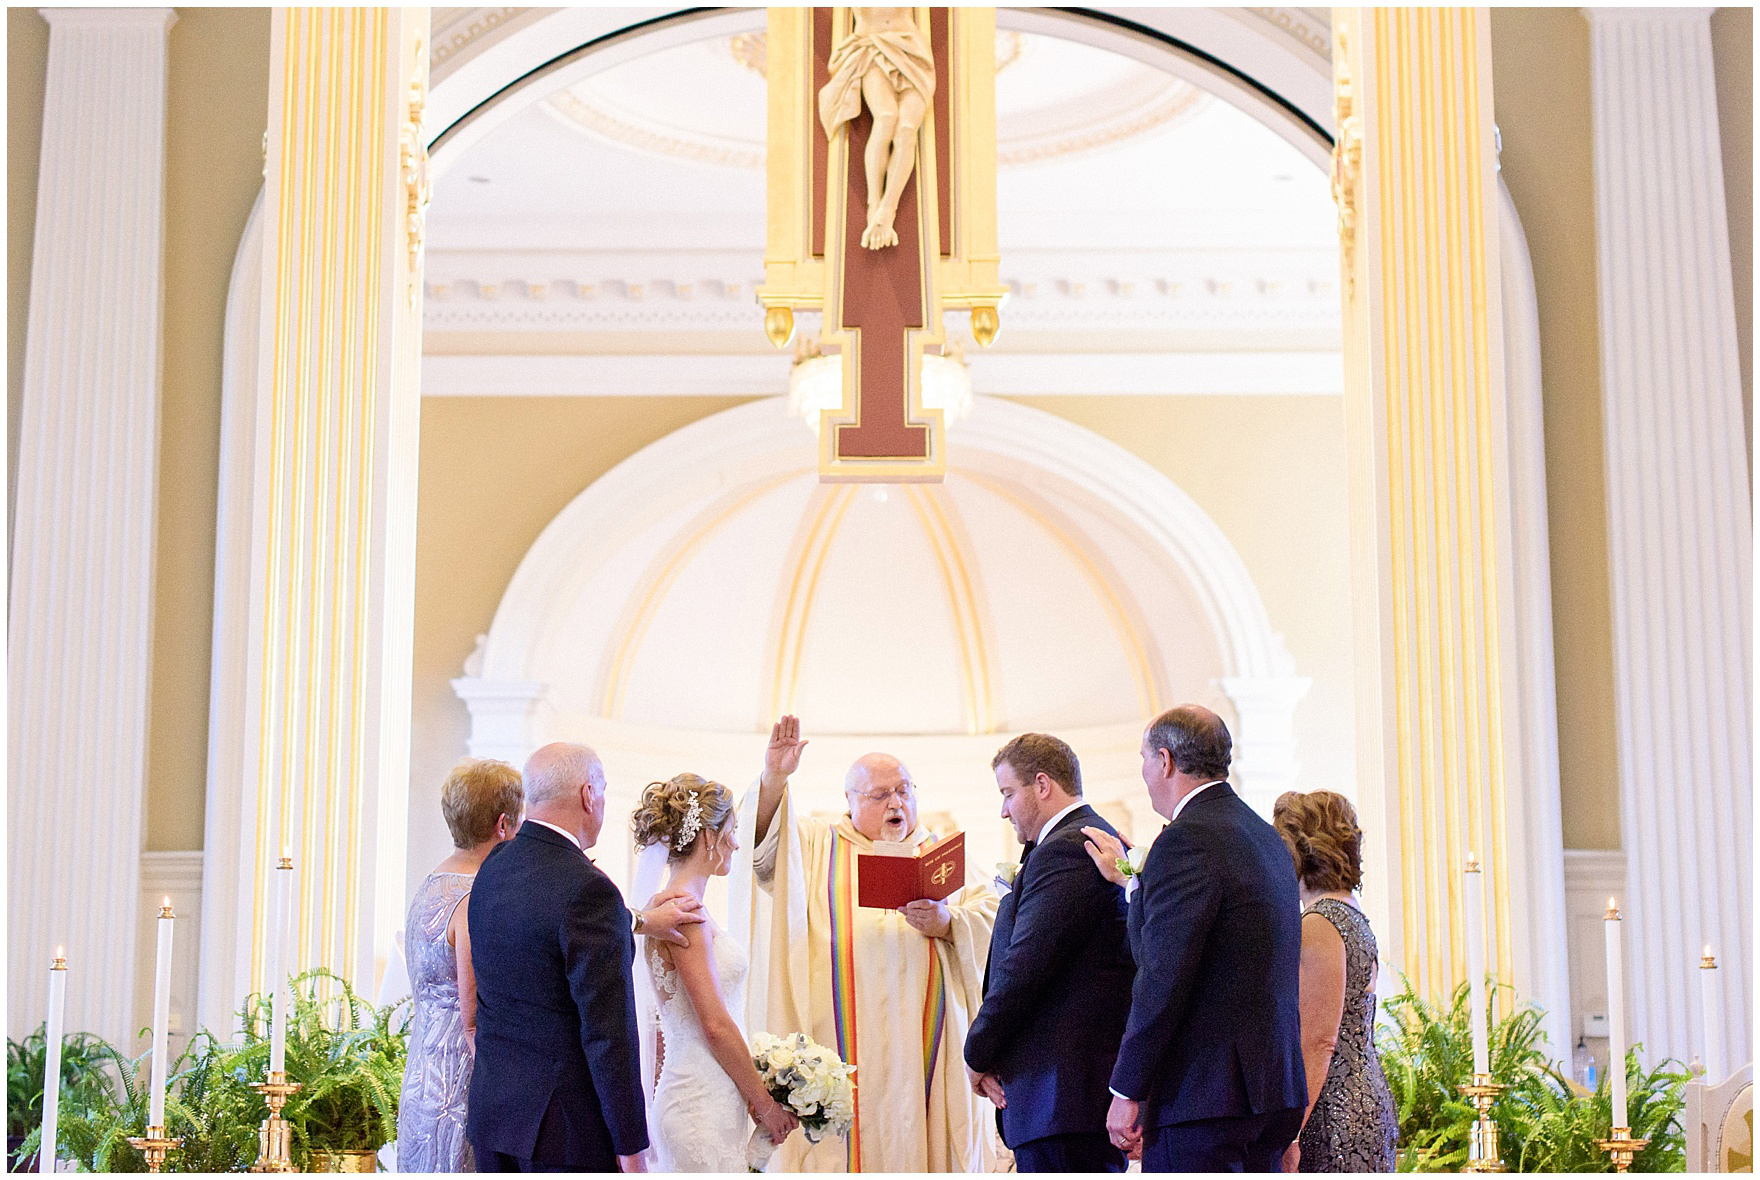 Family prays around the bride and groom during a Glen Club Glenview Illinois wedding.